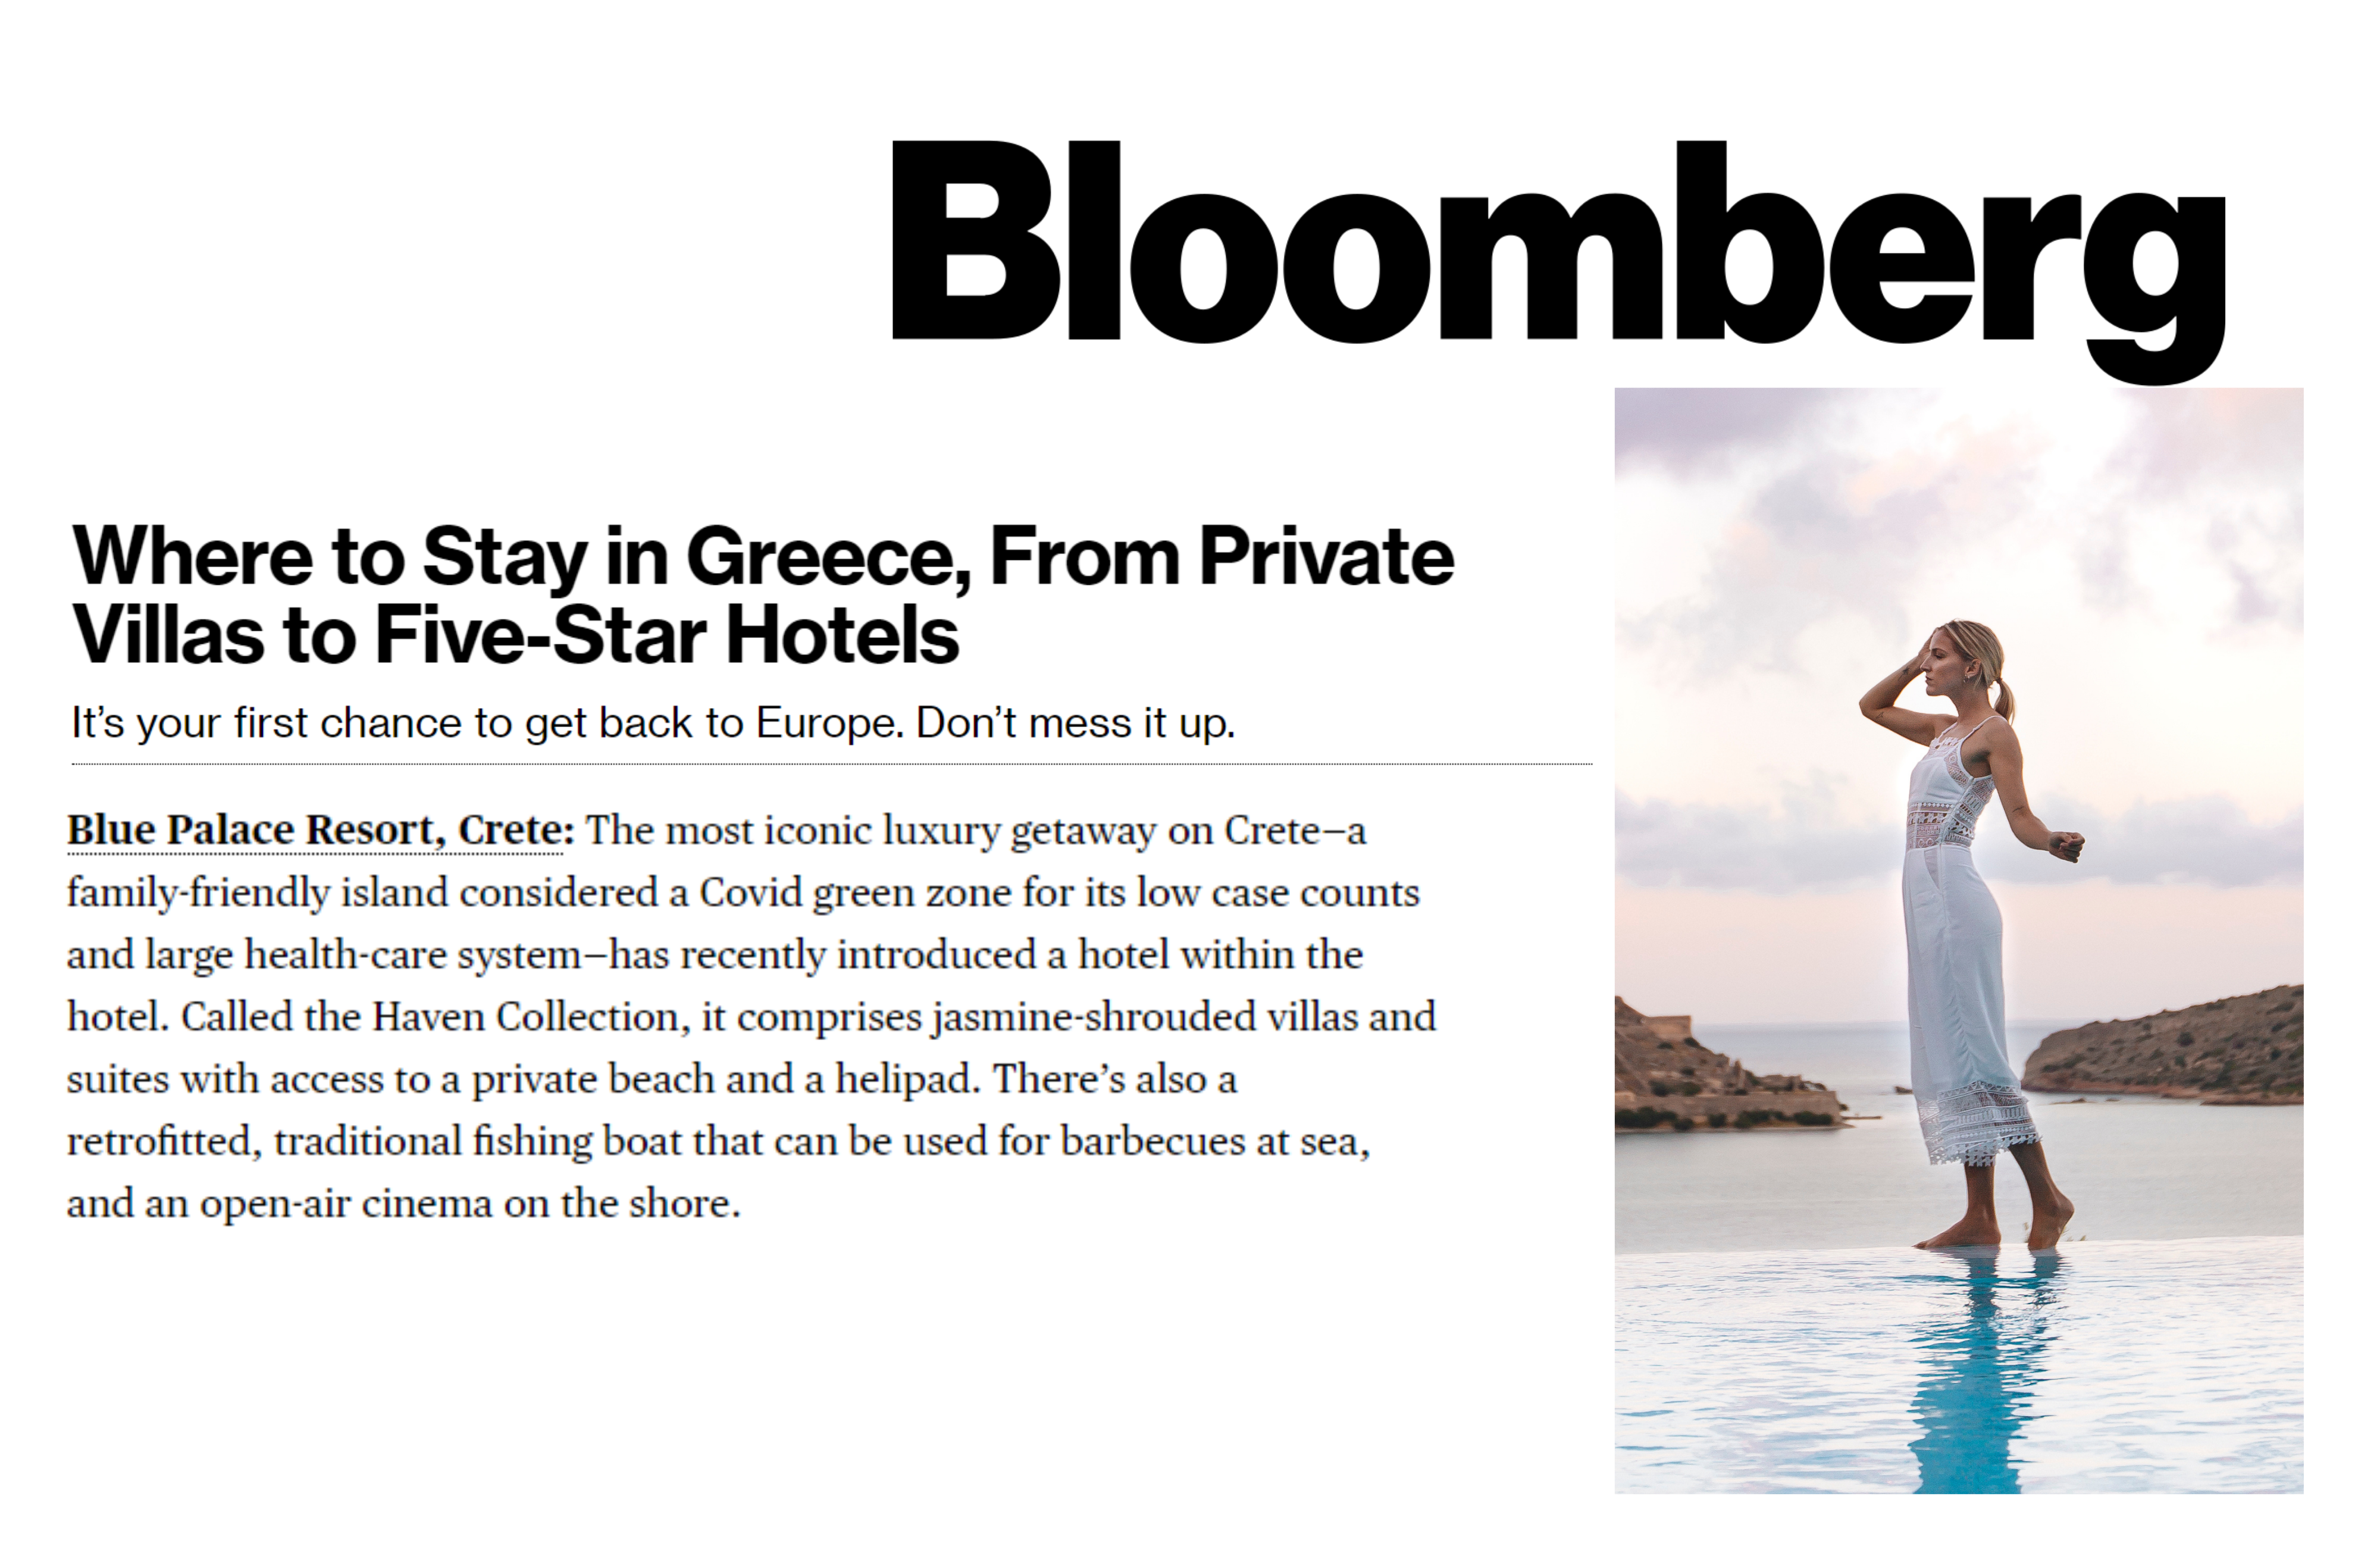 Where To Stay In Greece, By Nikki Ekstein In Bloomberg